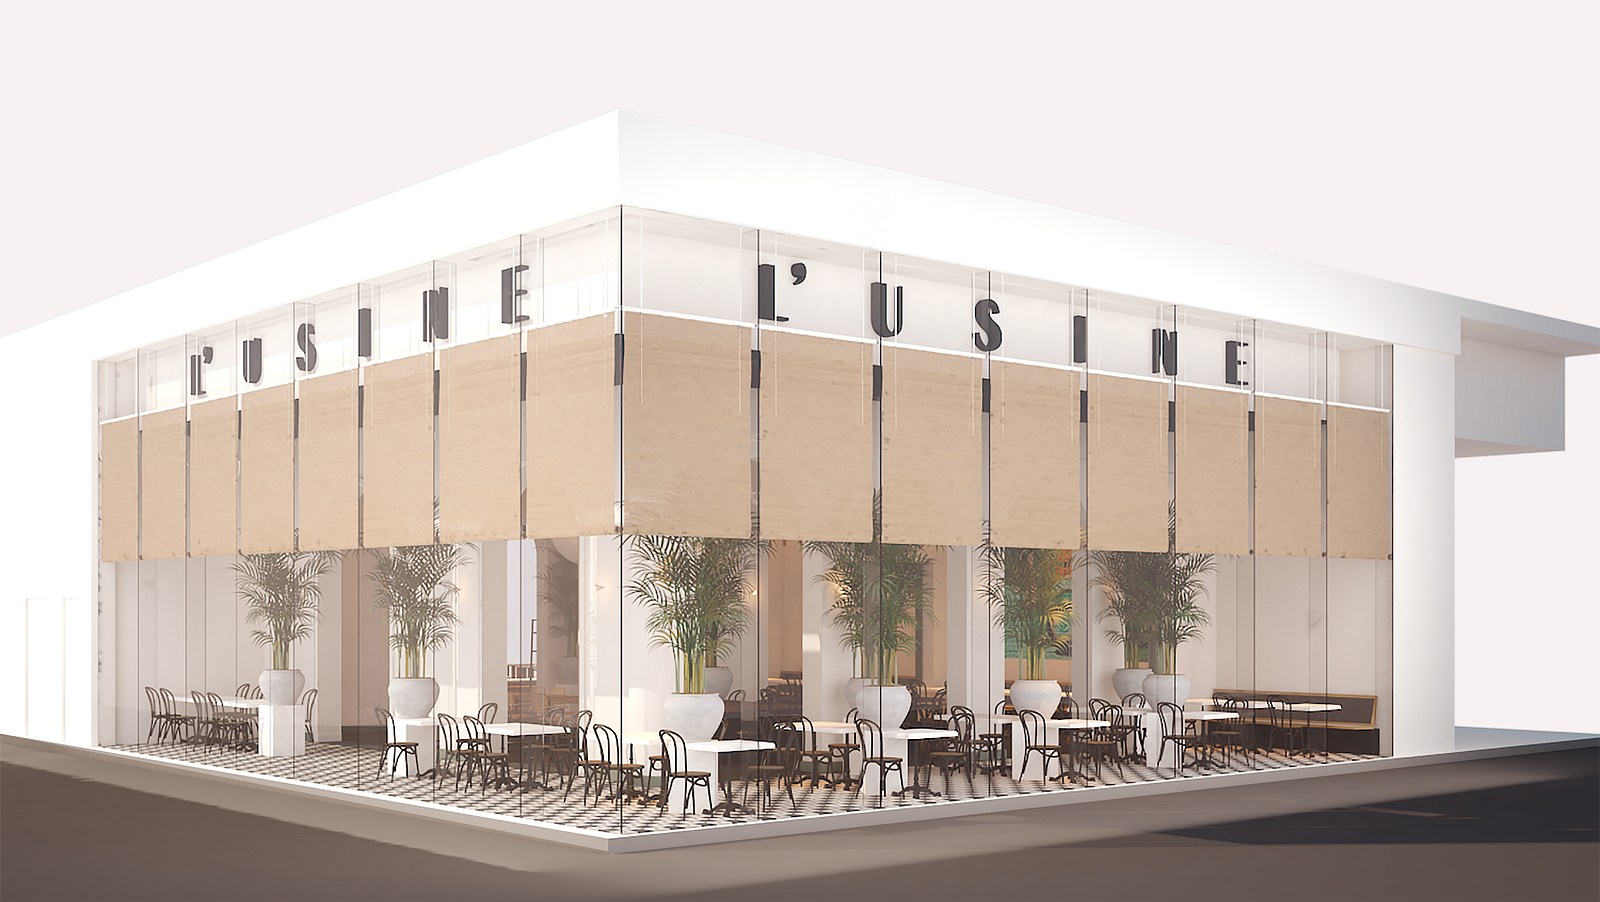 L Usine Arrives In District 7 With Largest Location Yet